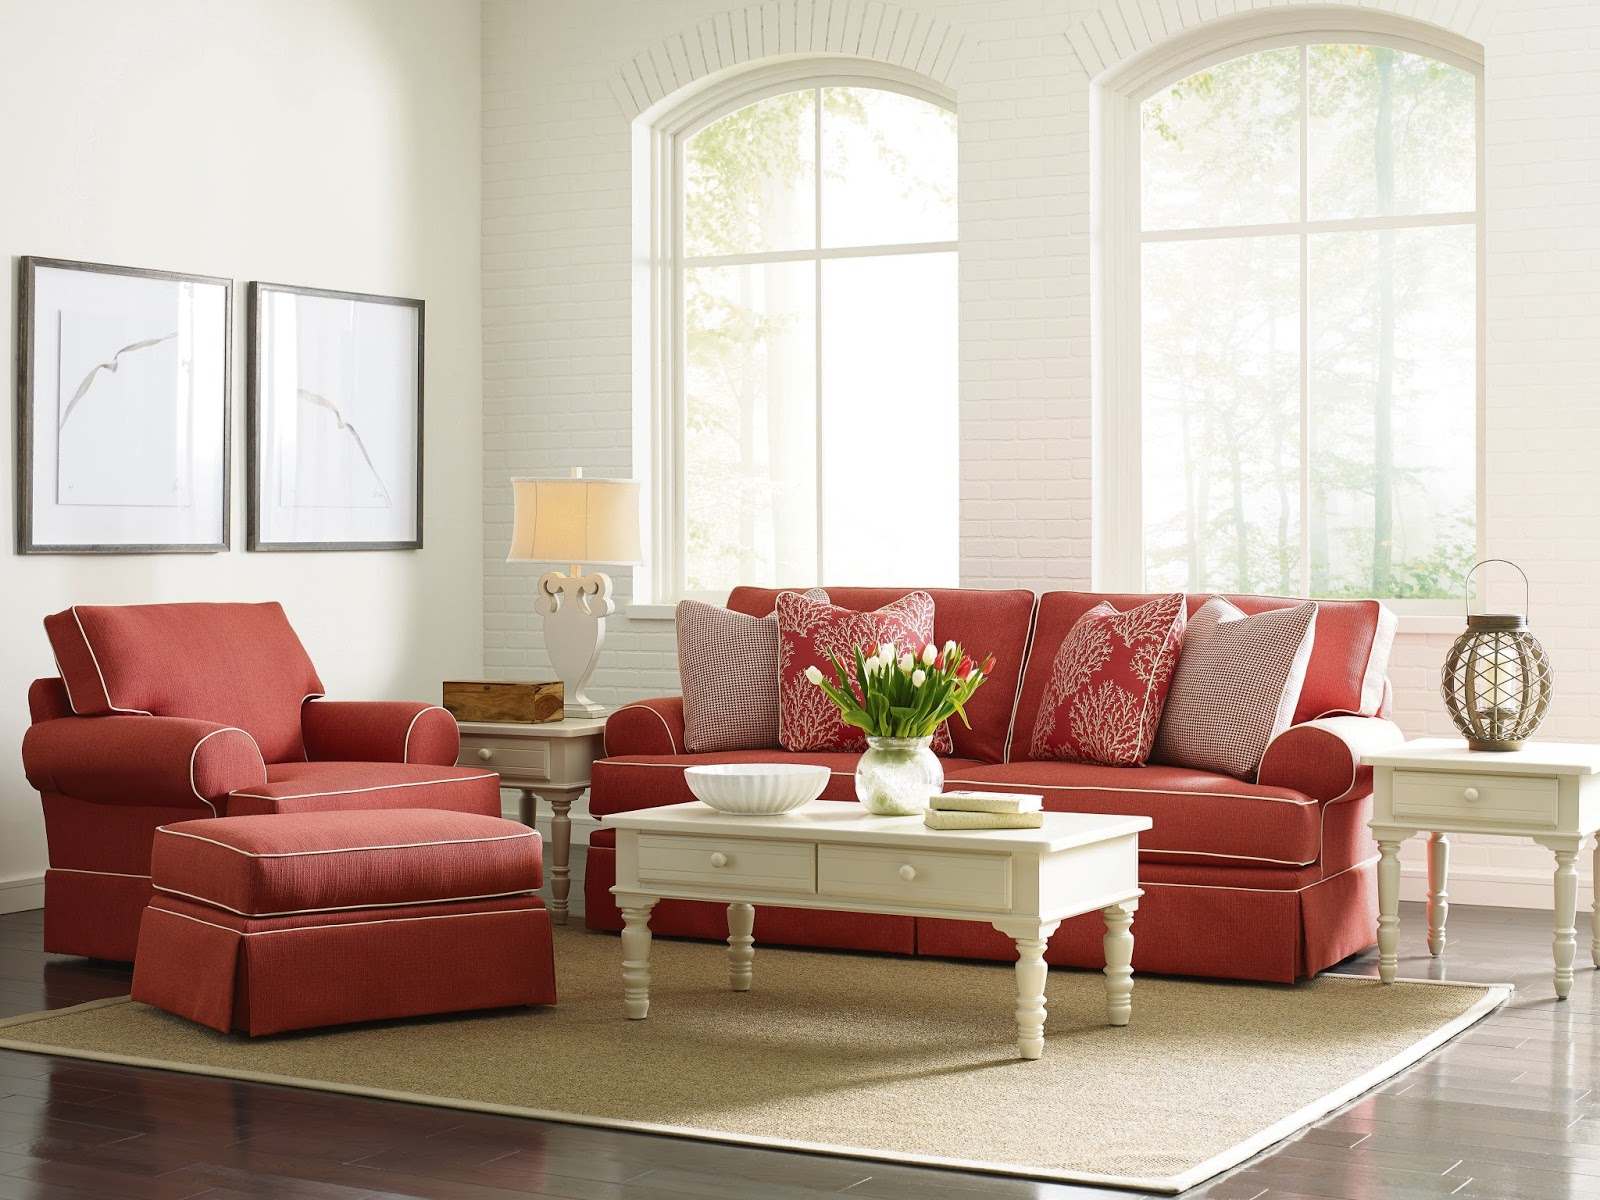 Baers Furnishing November - Broyhill emily sofa